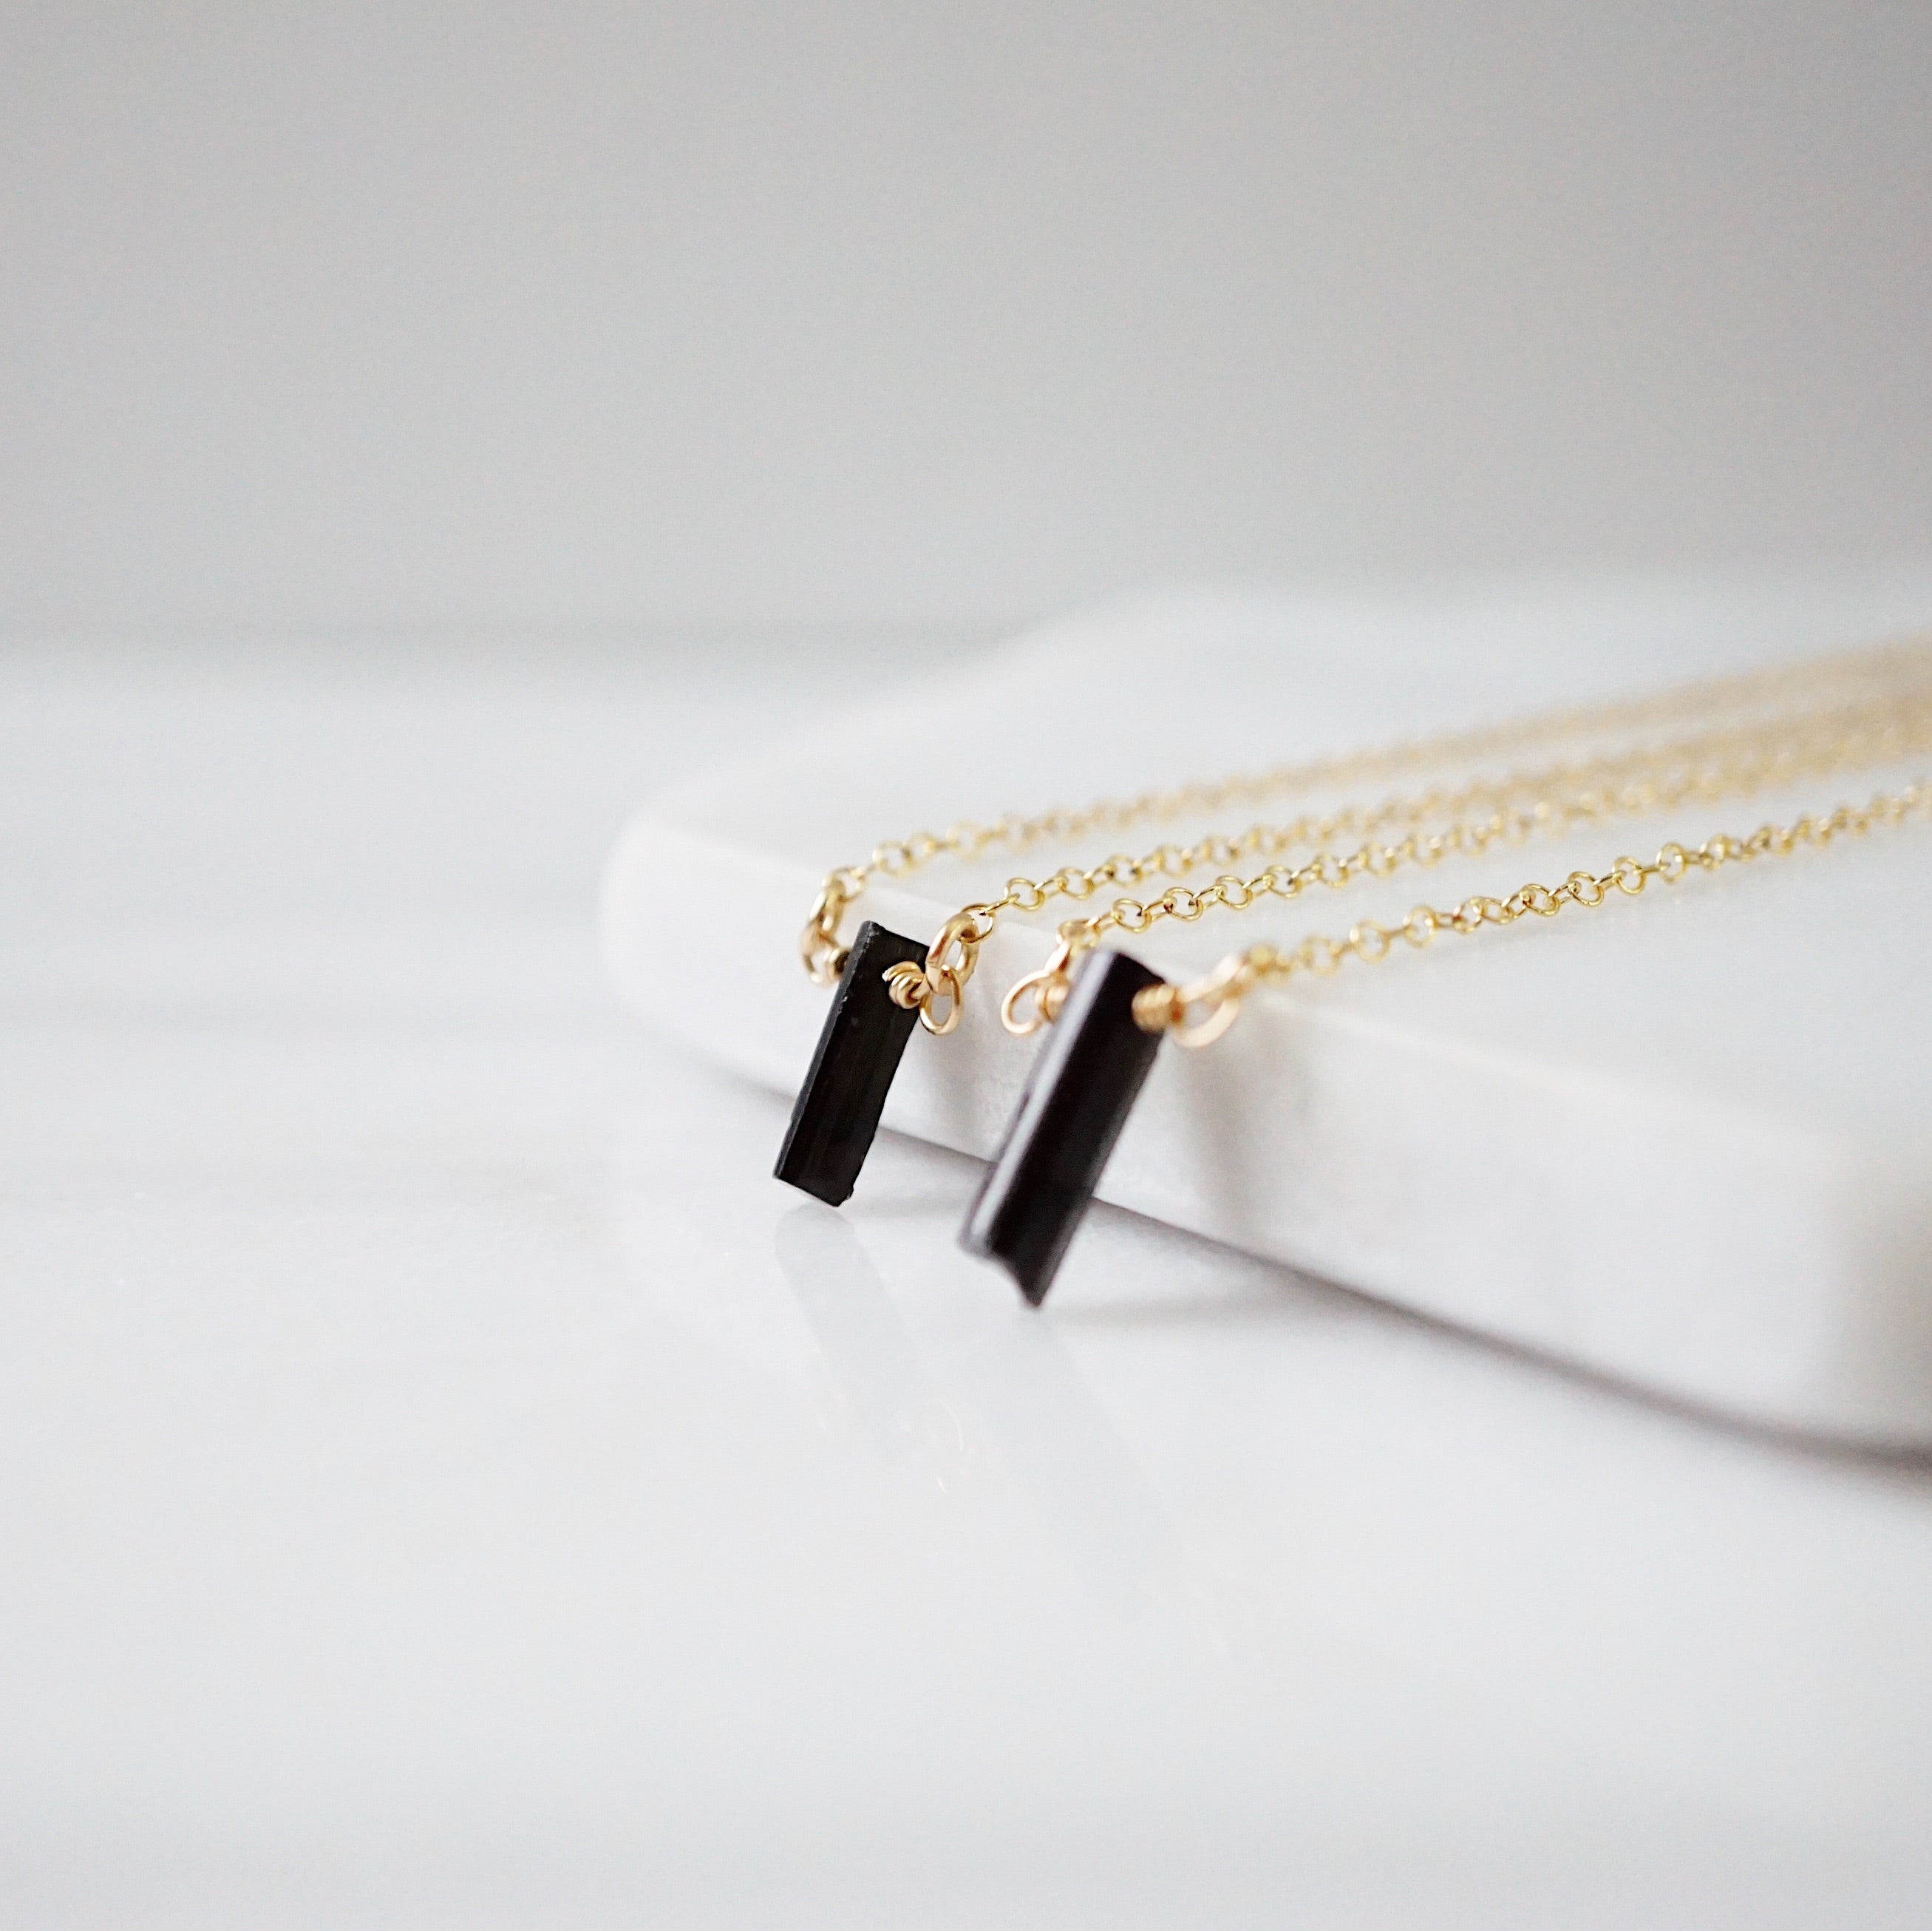 EMF Collection ☼ Dainty Wire Wrapped Raw Black Tourmaline Necklace [G]+[S] - Lava Essential Oils